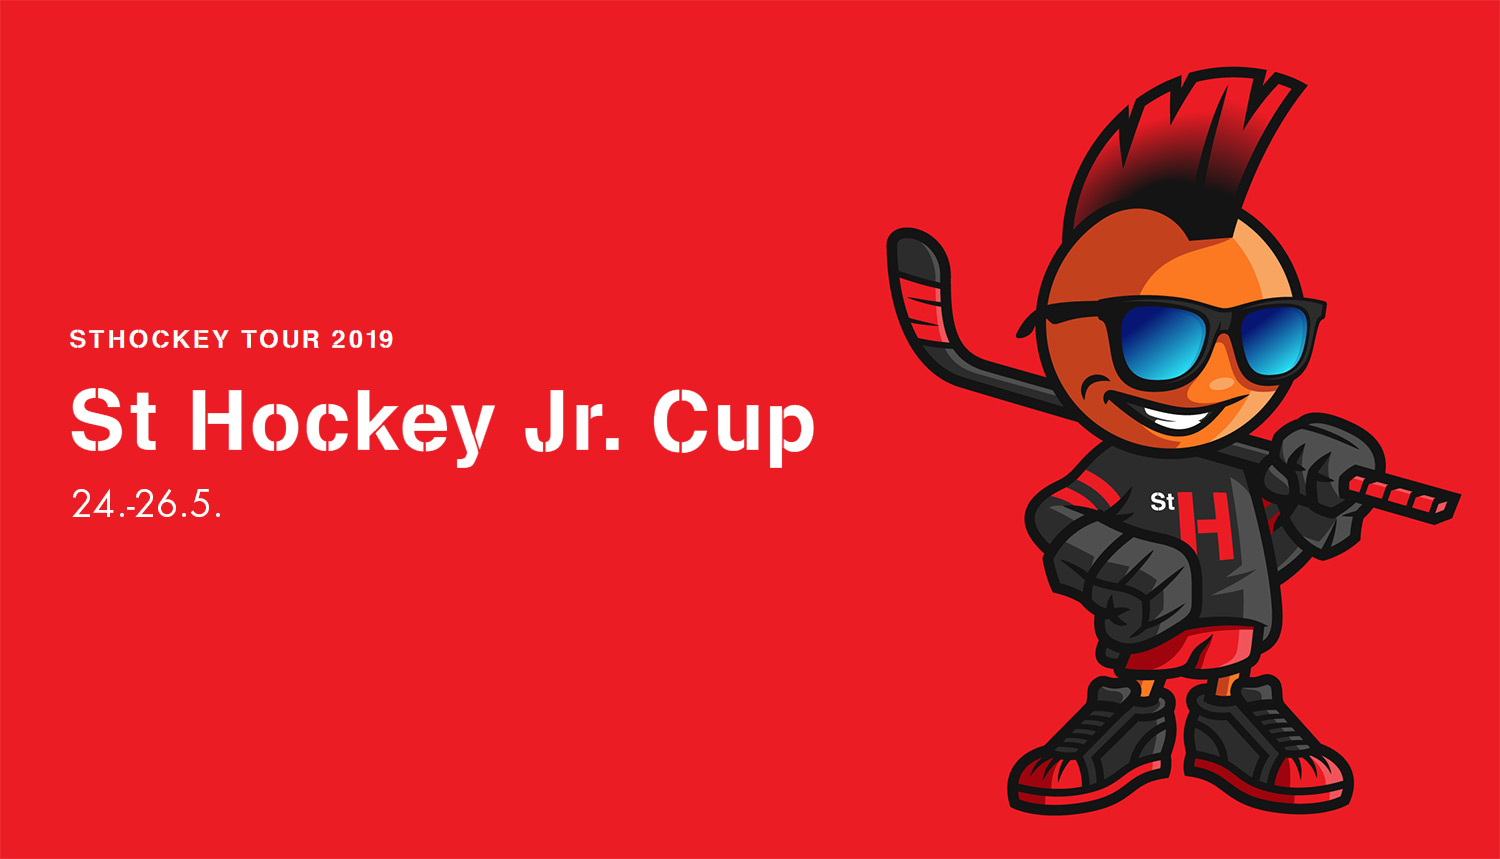 St Hockey Jr. Cup